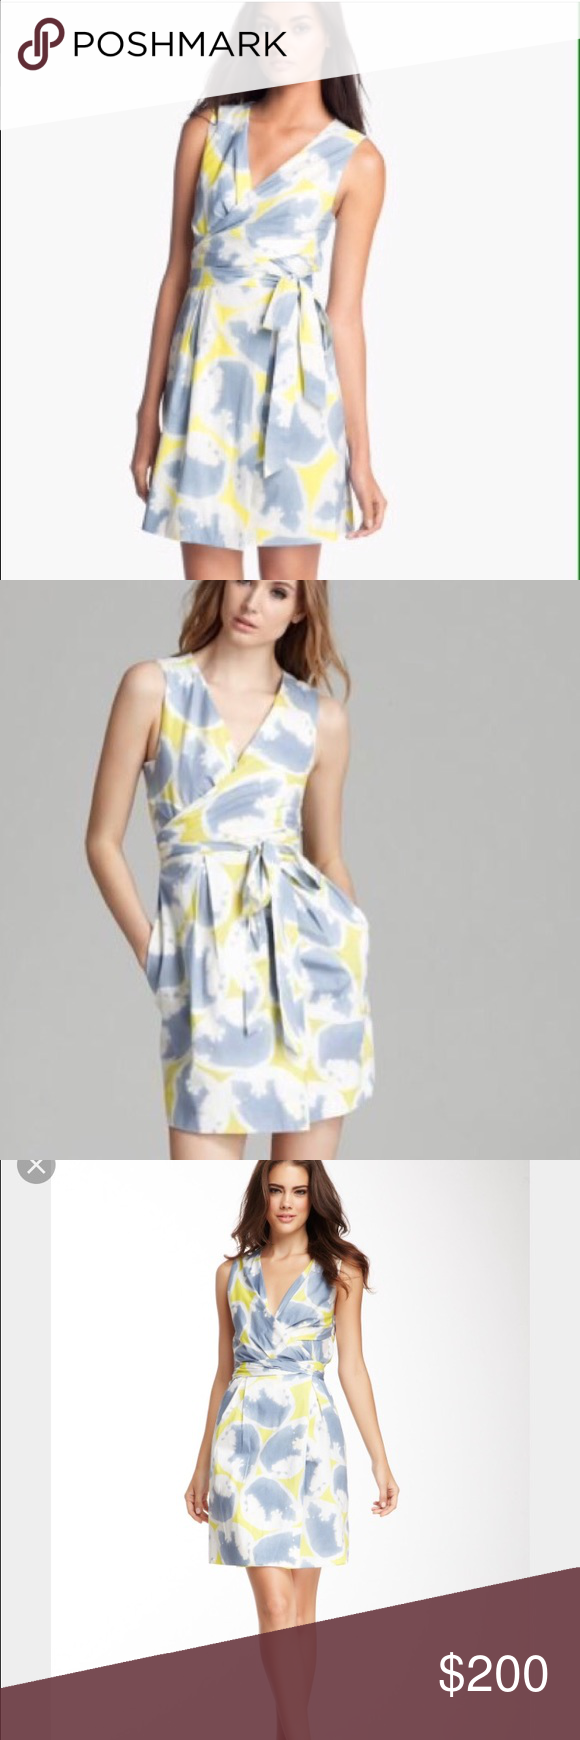 DvF Carol Mini Wrap Dress Get this classic DvF wrap dress in acid water yellow print. DvF's signature wrap dress is flattering for everyone and this is a total steal! Worn only a handful of times, this dress is in amazing condition! Diane von Furstenberg Dresses Mini